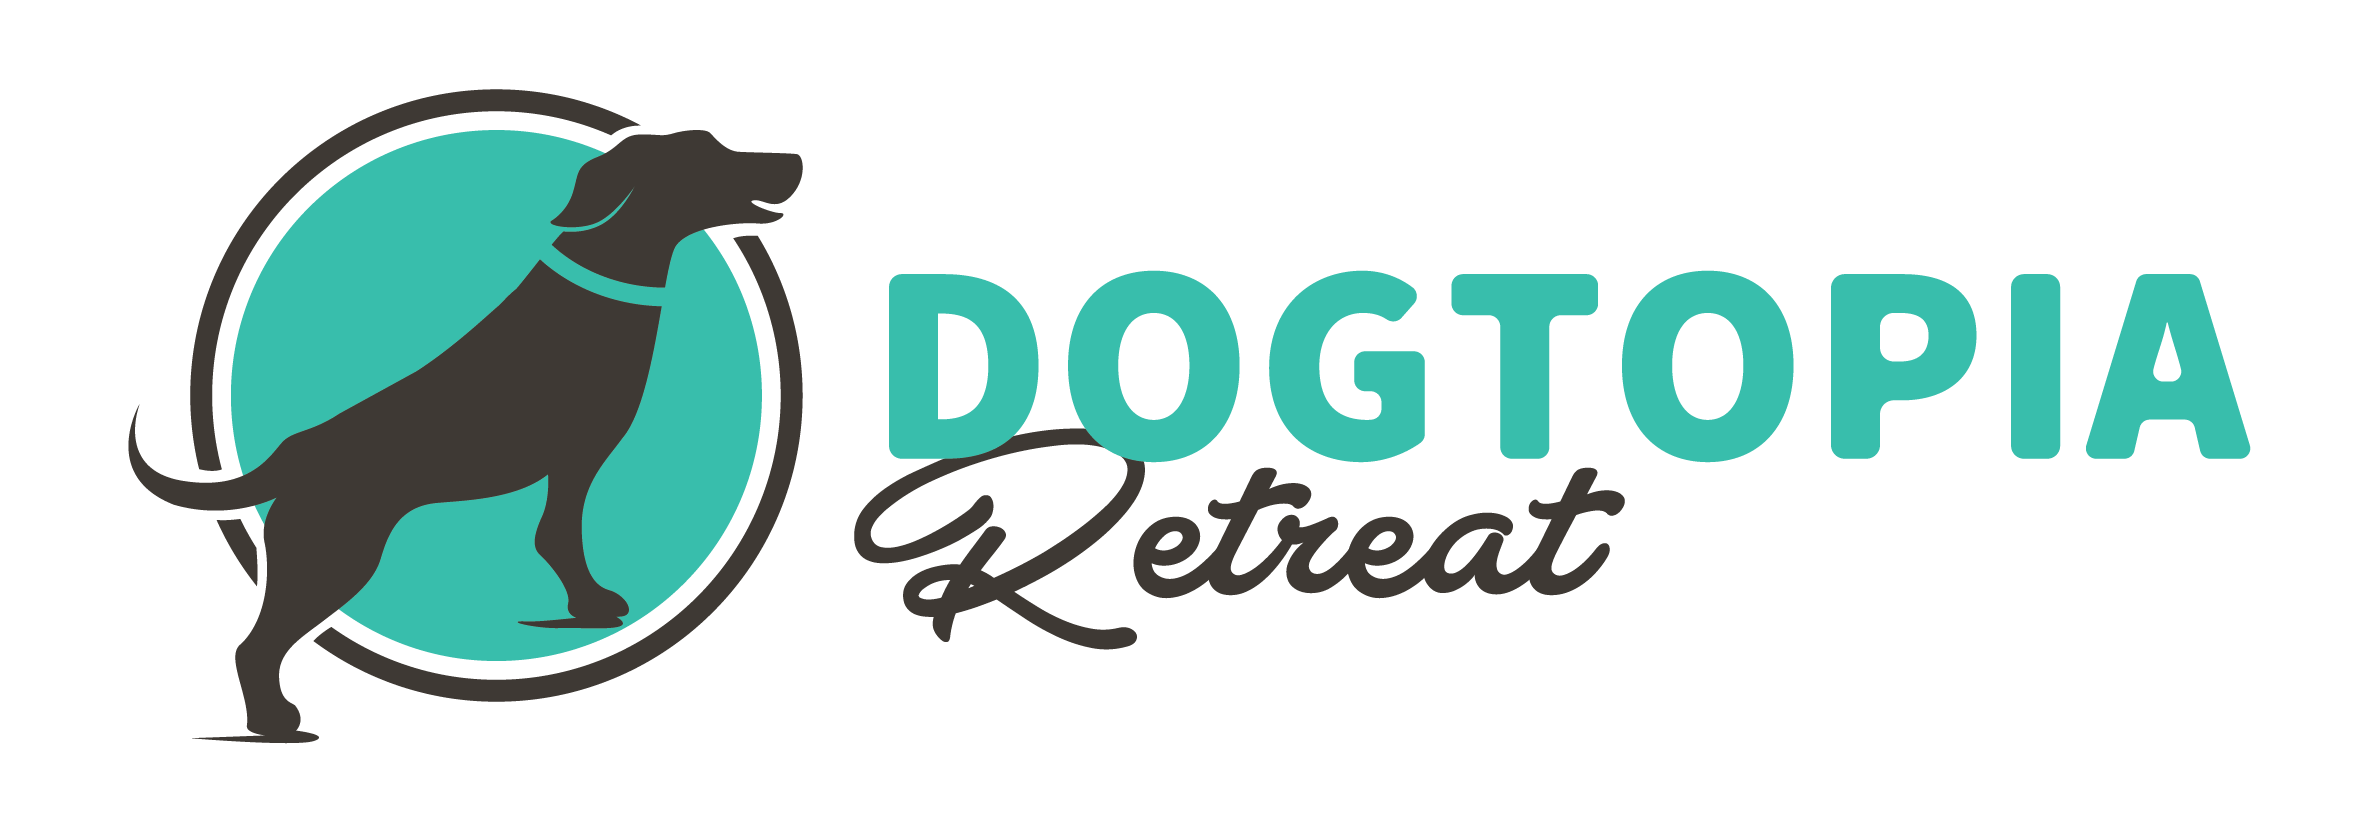 Dogtopia Retreat